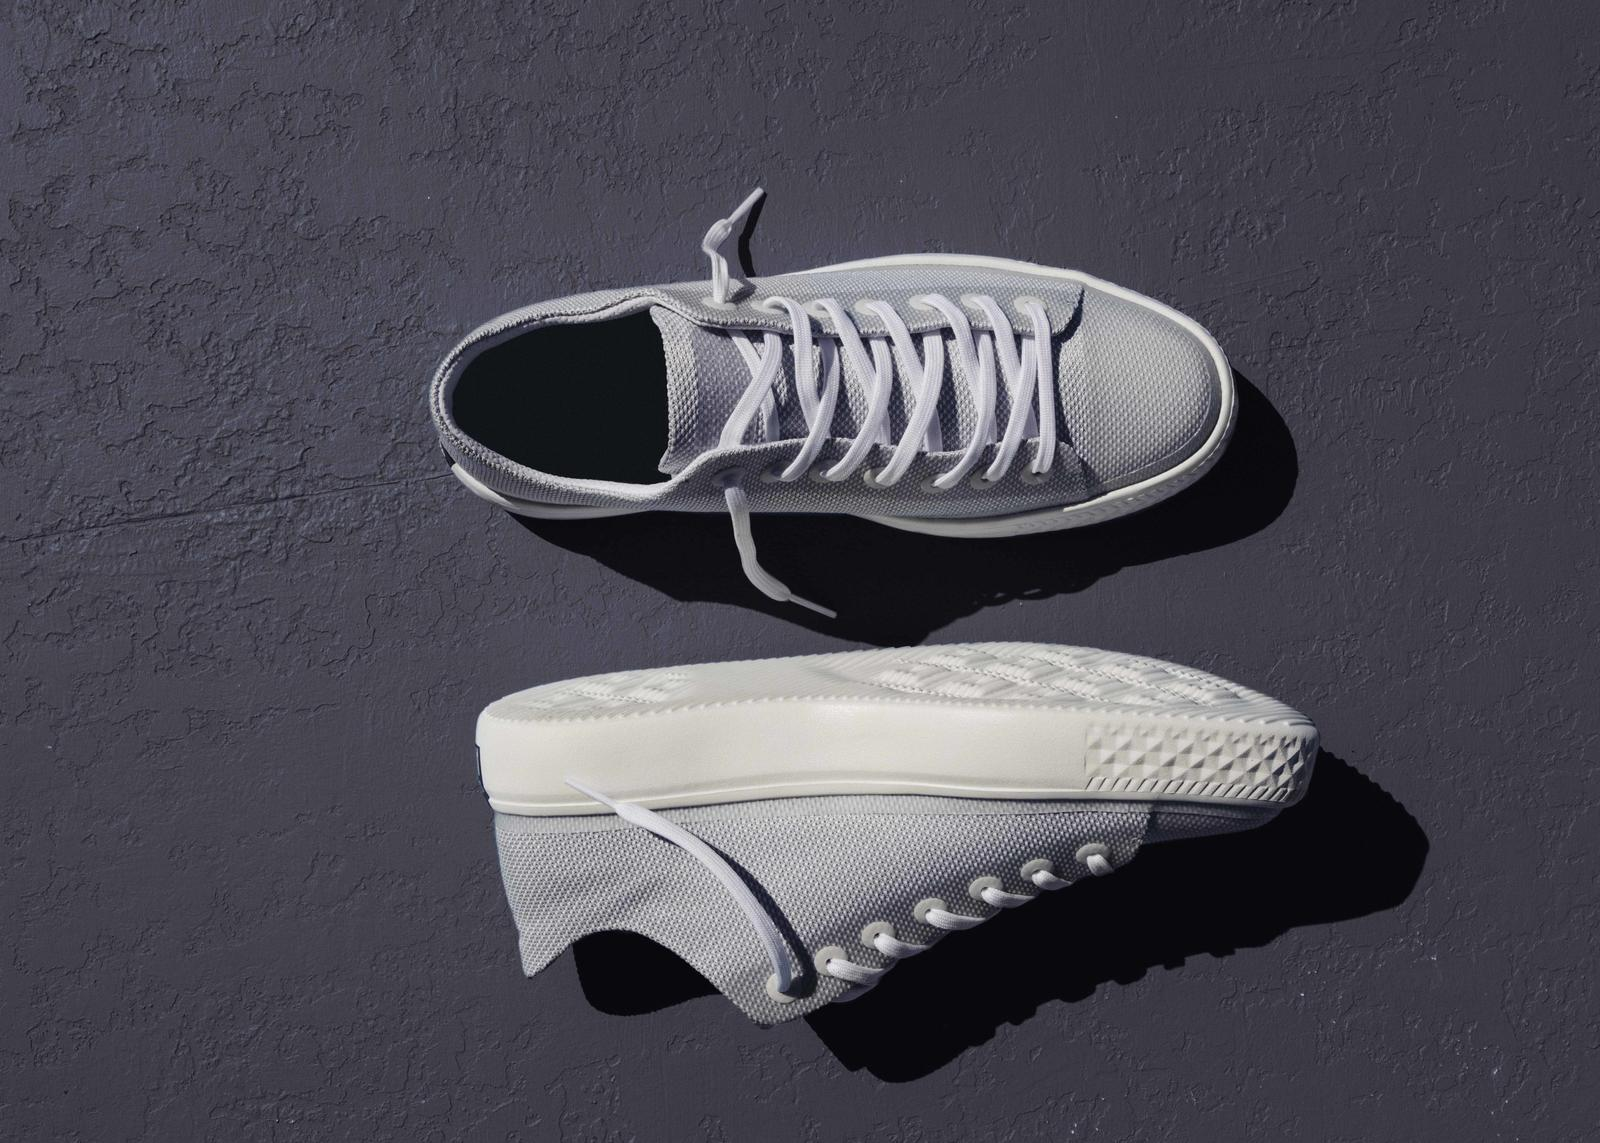 b4bc4f1ca32 Converse Unveils Chuck Modern Colors Collection - Nike News